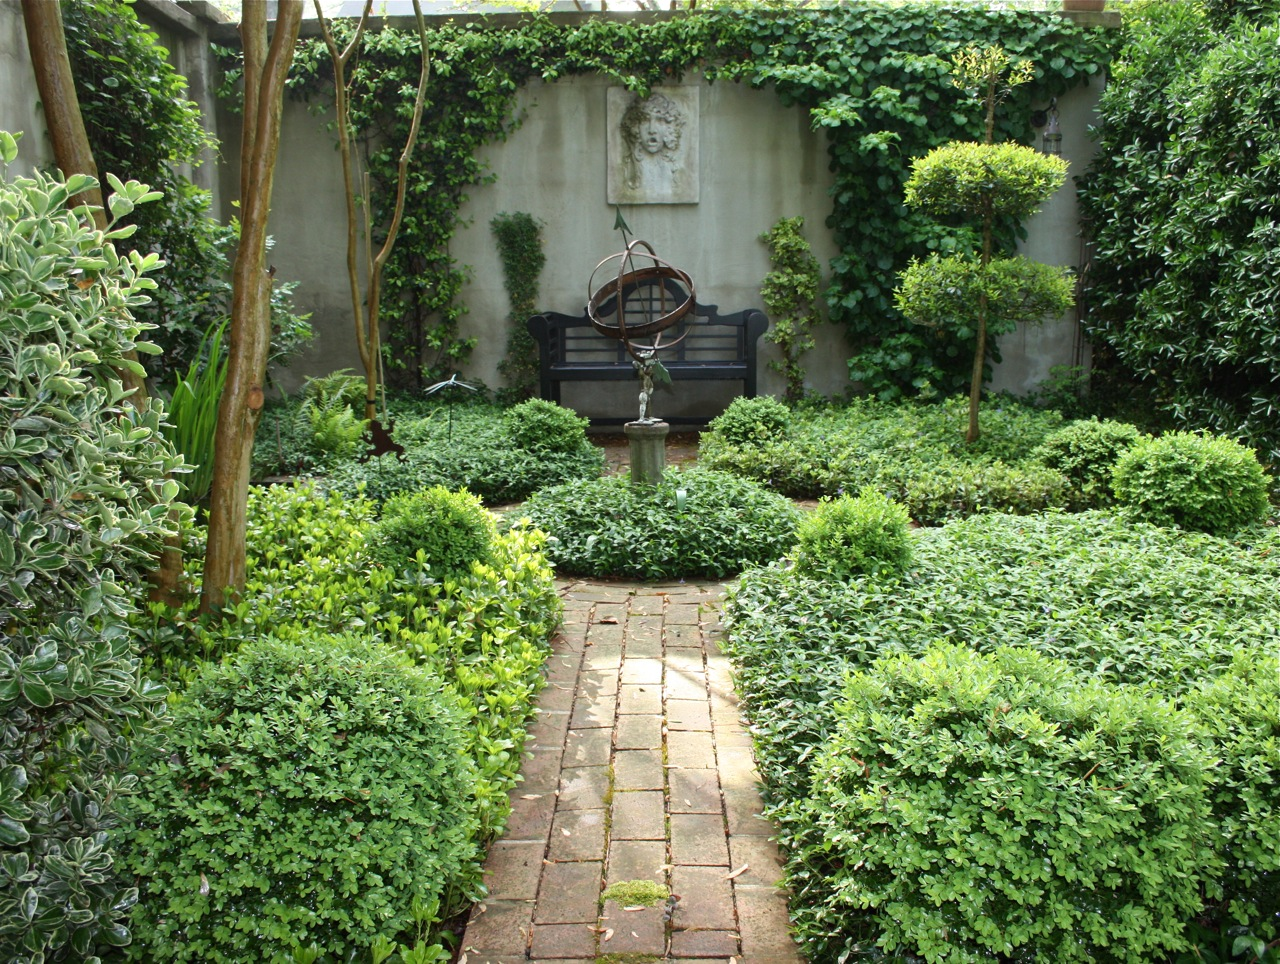 A curious gardener southern courtyard gardens for Small garden courtyard designs